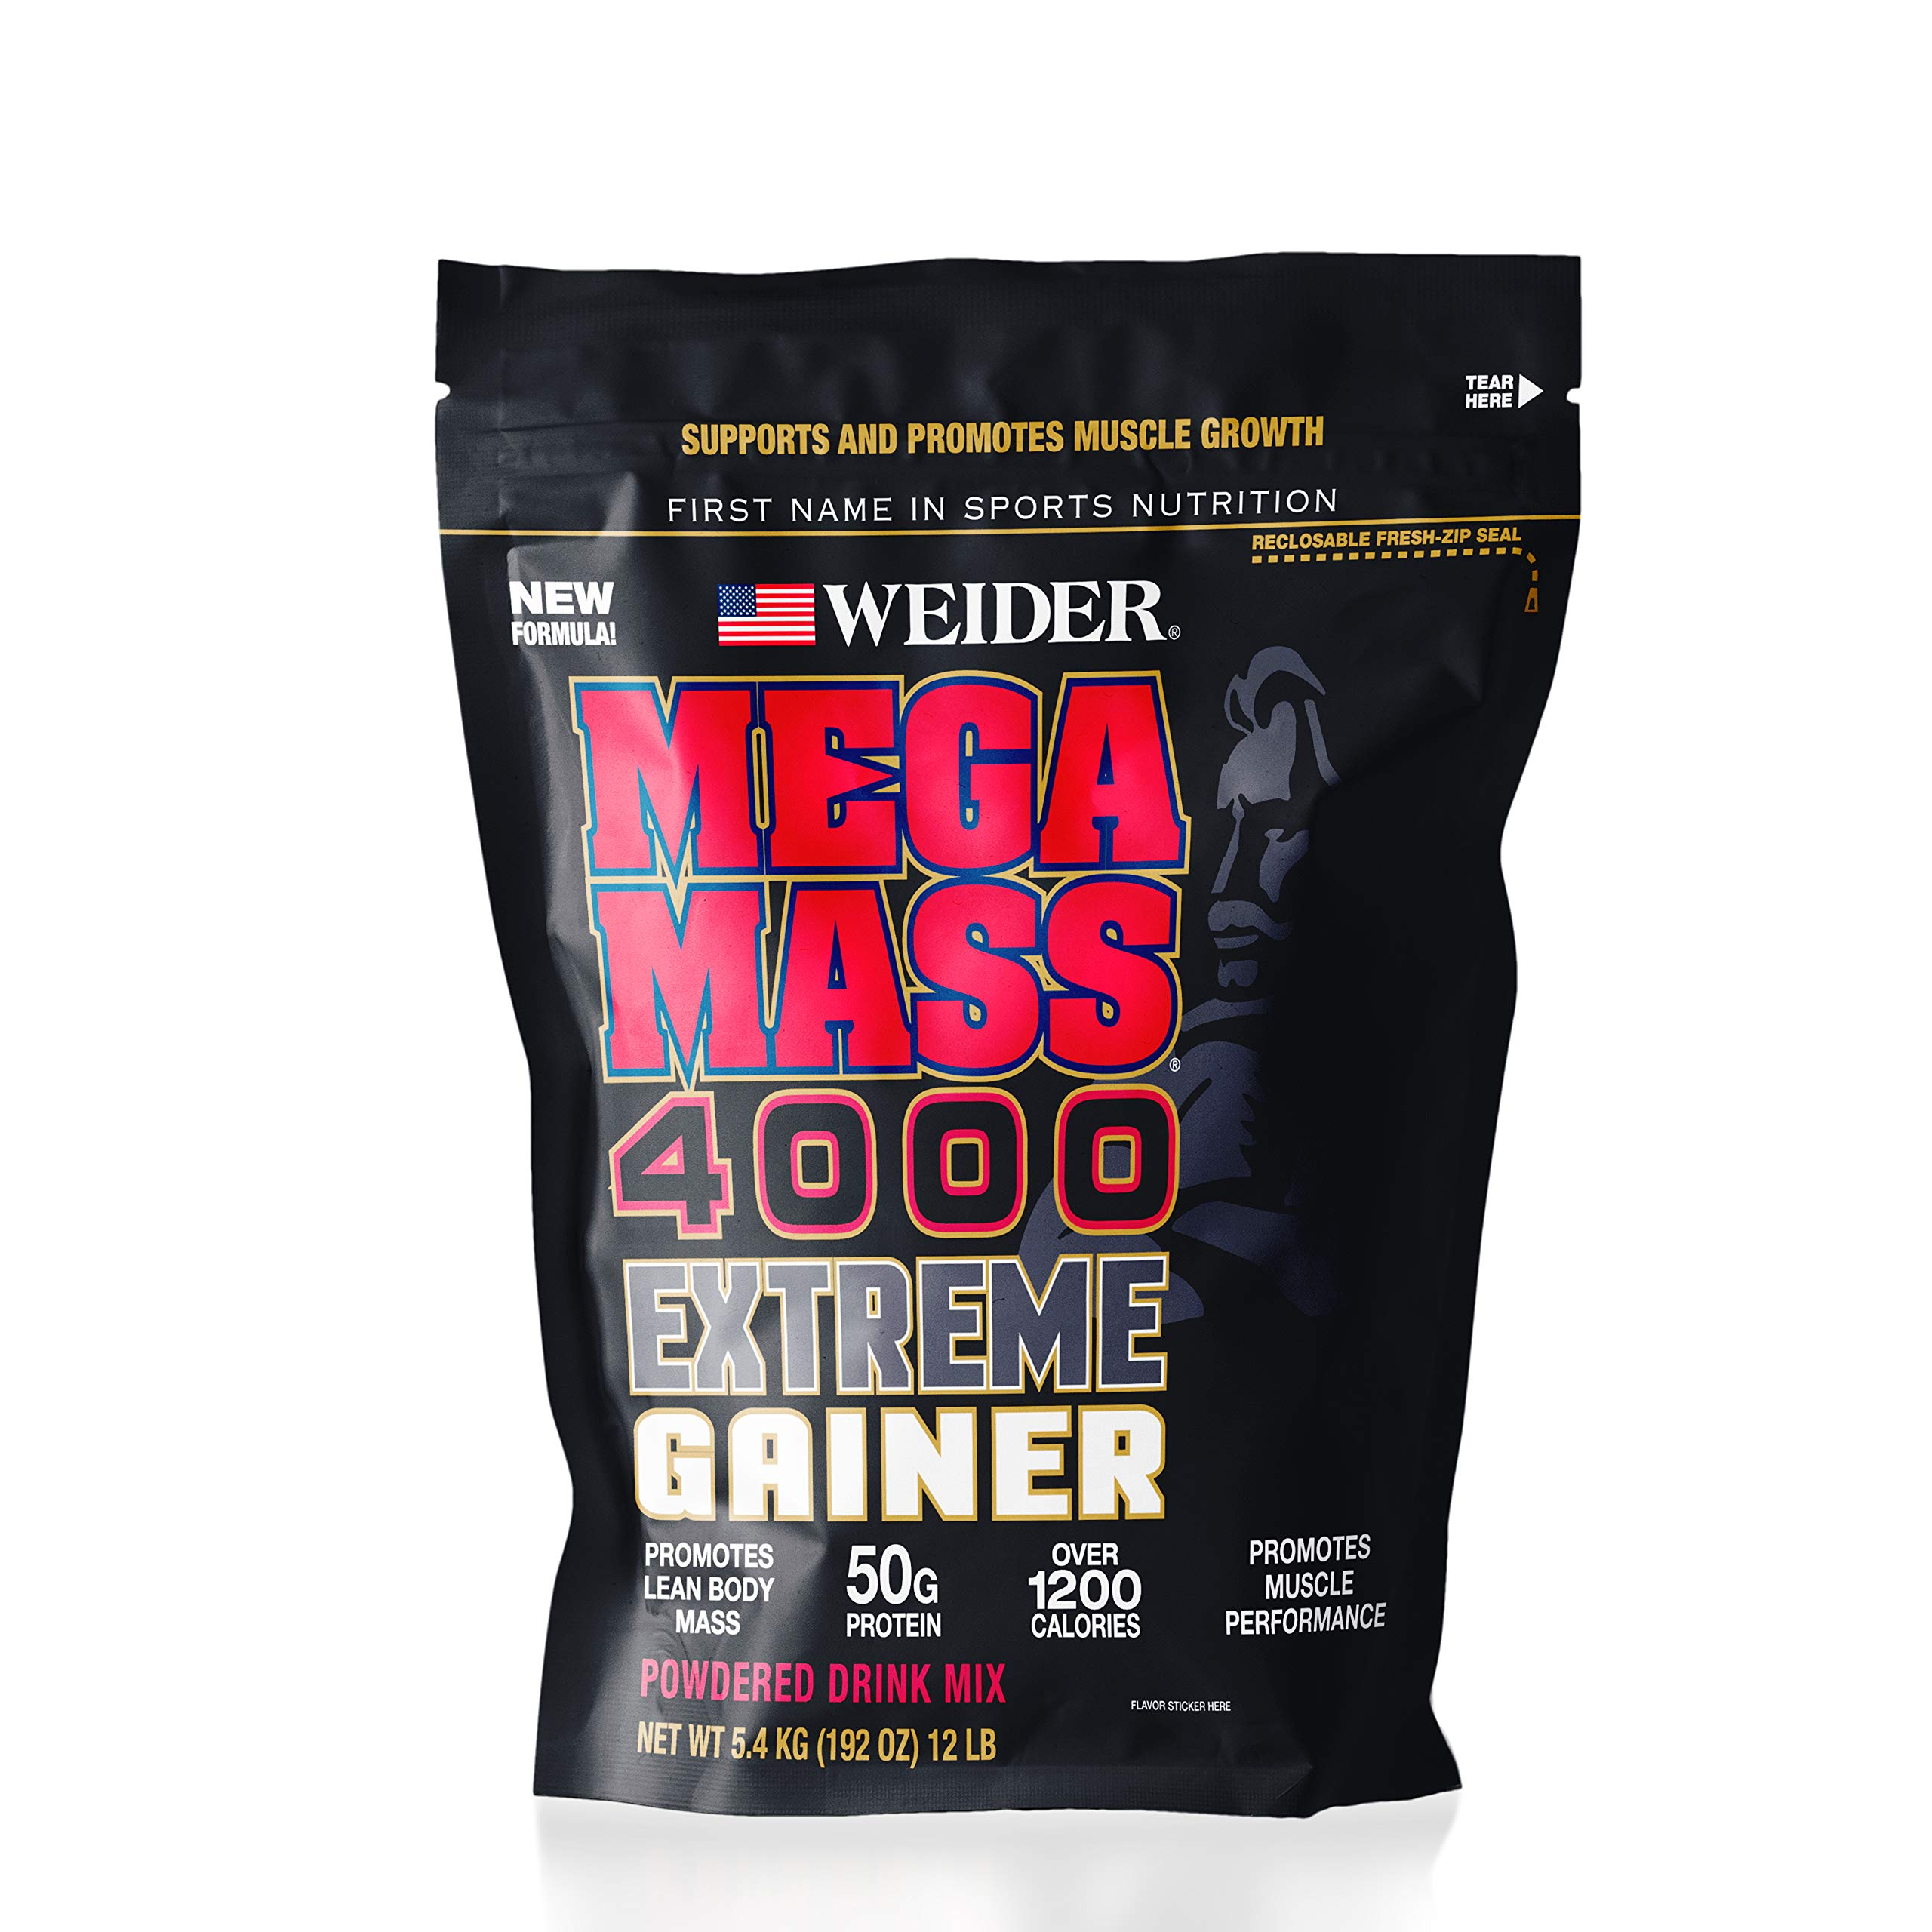 Weider Megamass 4000 Extreme Gainer - Our Best Selling Gainers - 50 Grams of Protein per Serving - Over 1,200 Calories - Over 250 Grams of Carbs by Weider (Image #1)